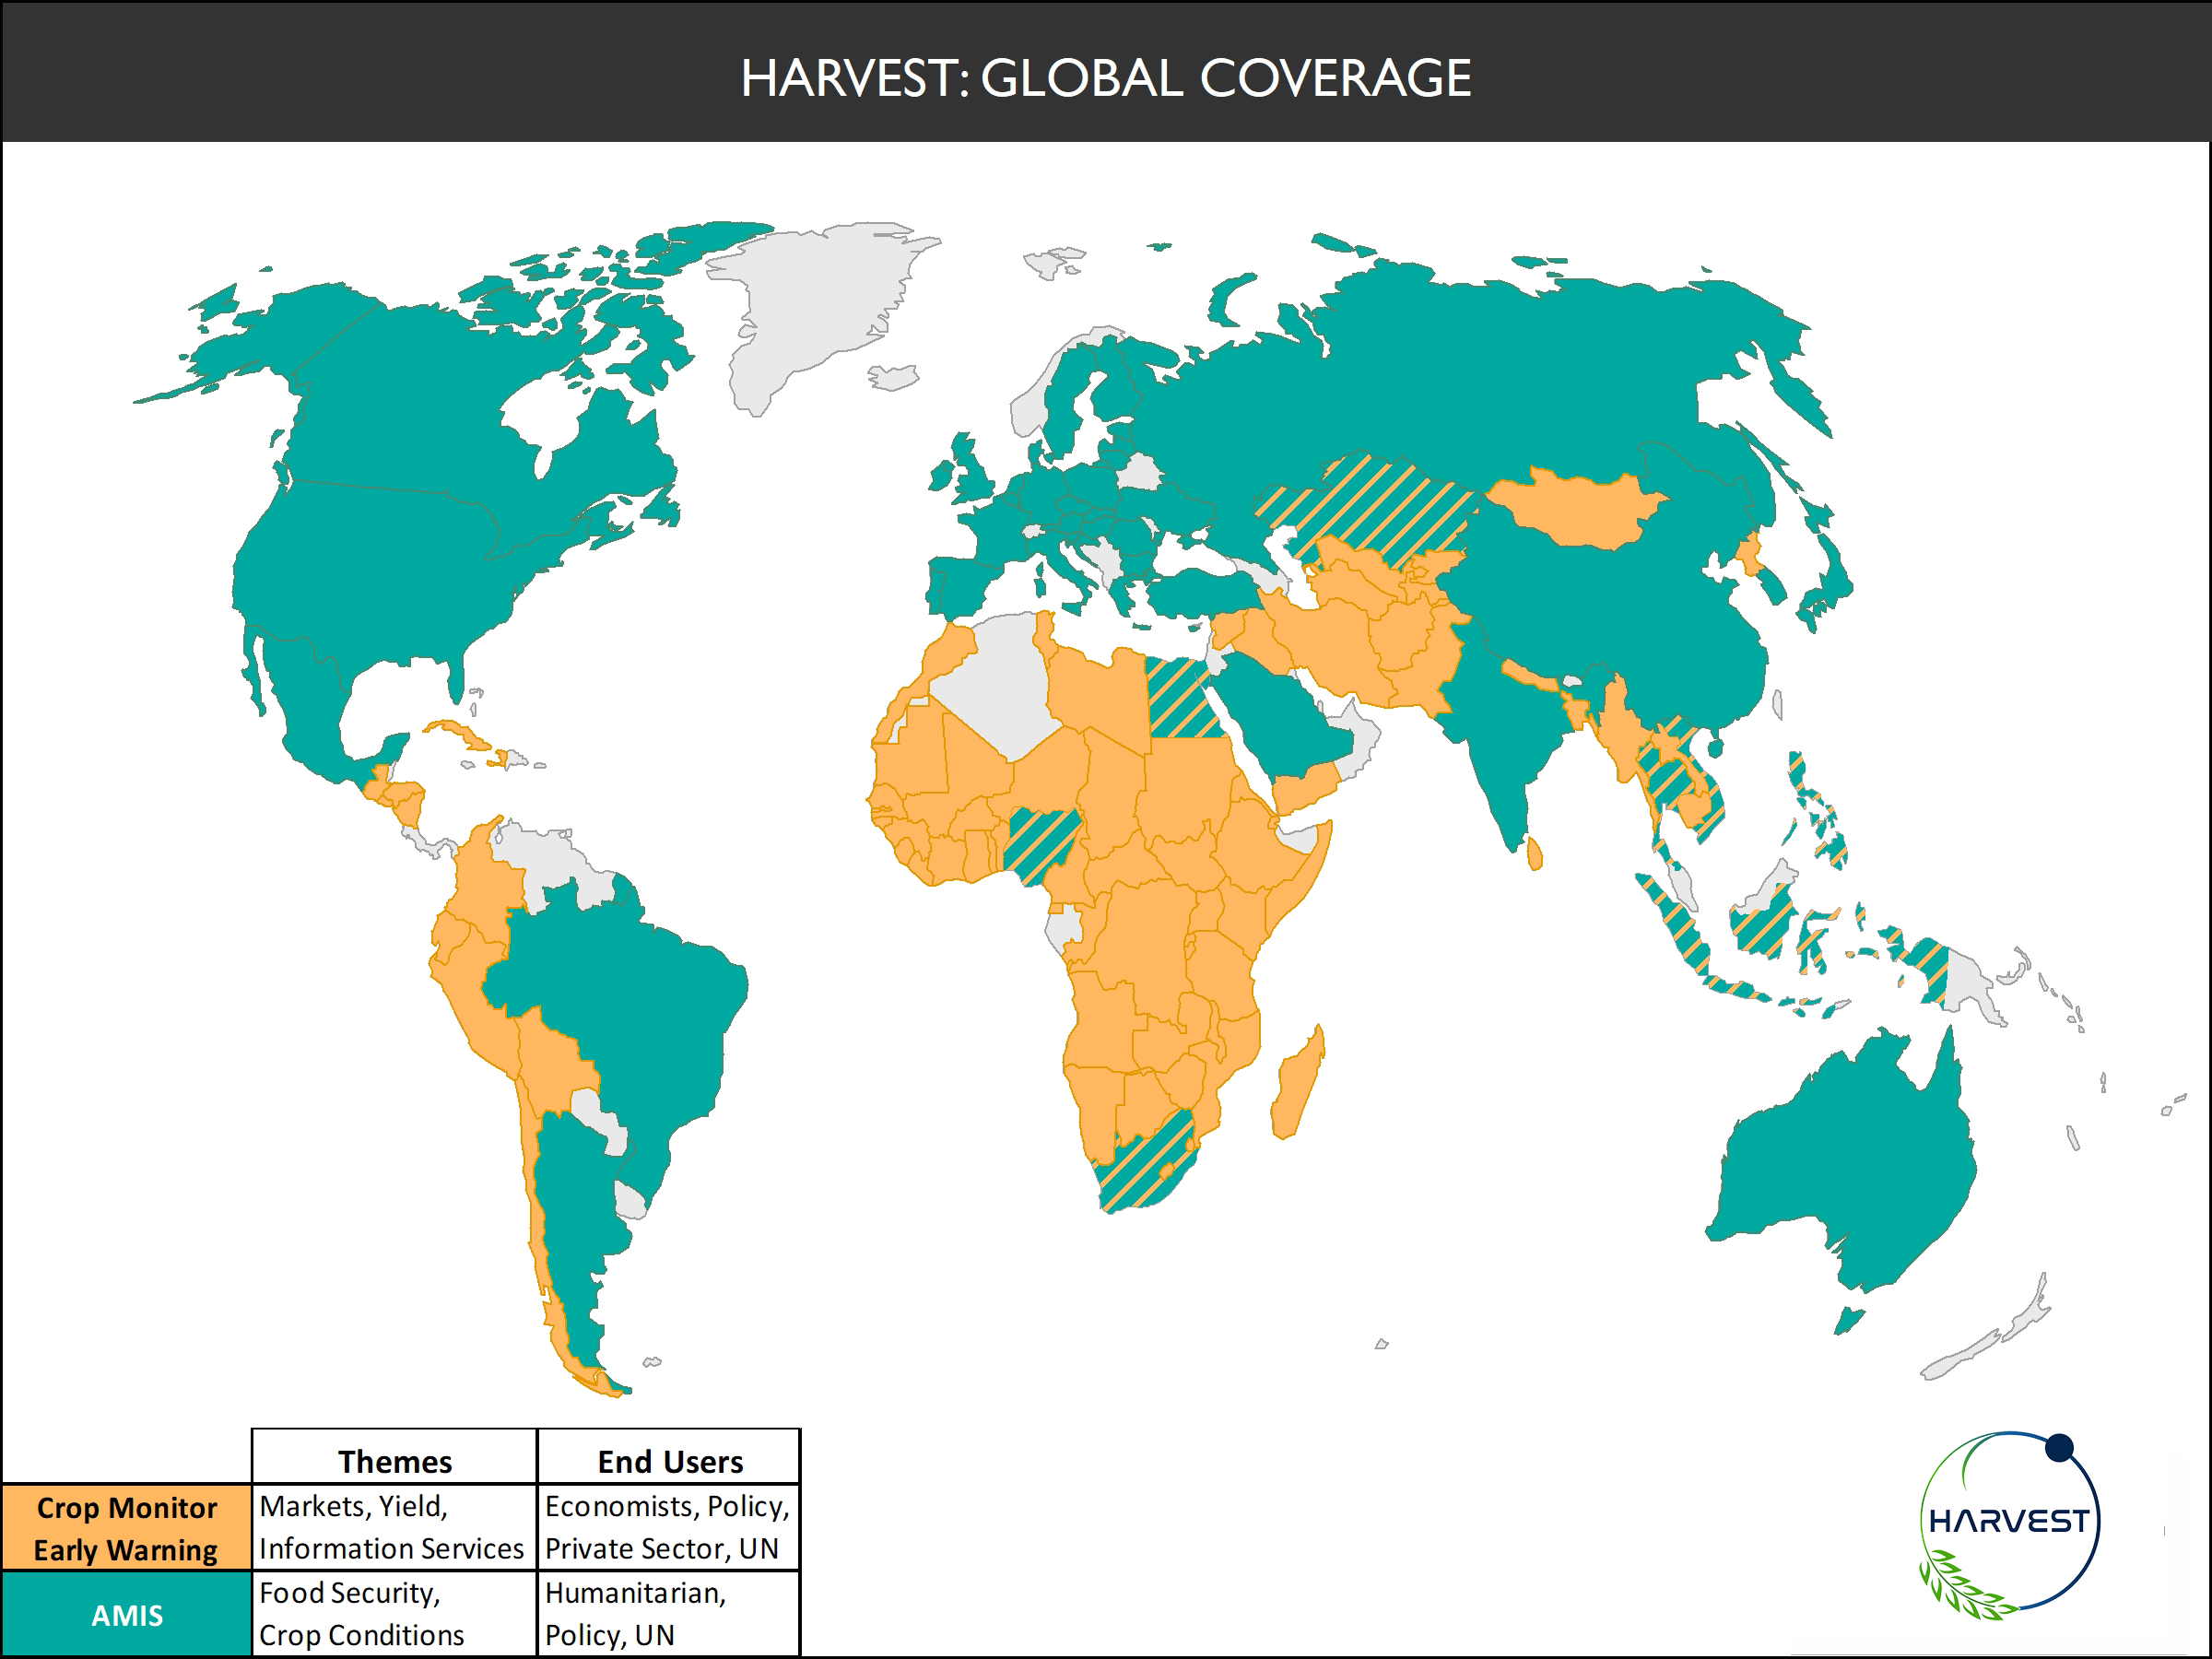 Harvest Global Coverage